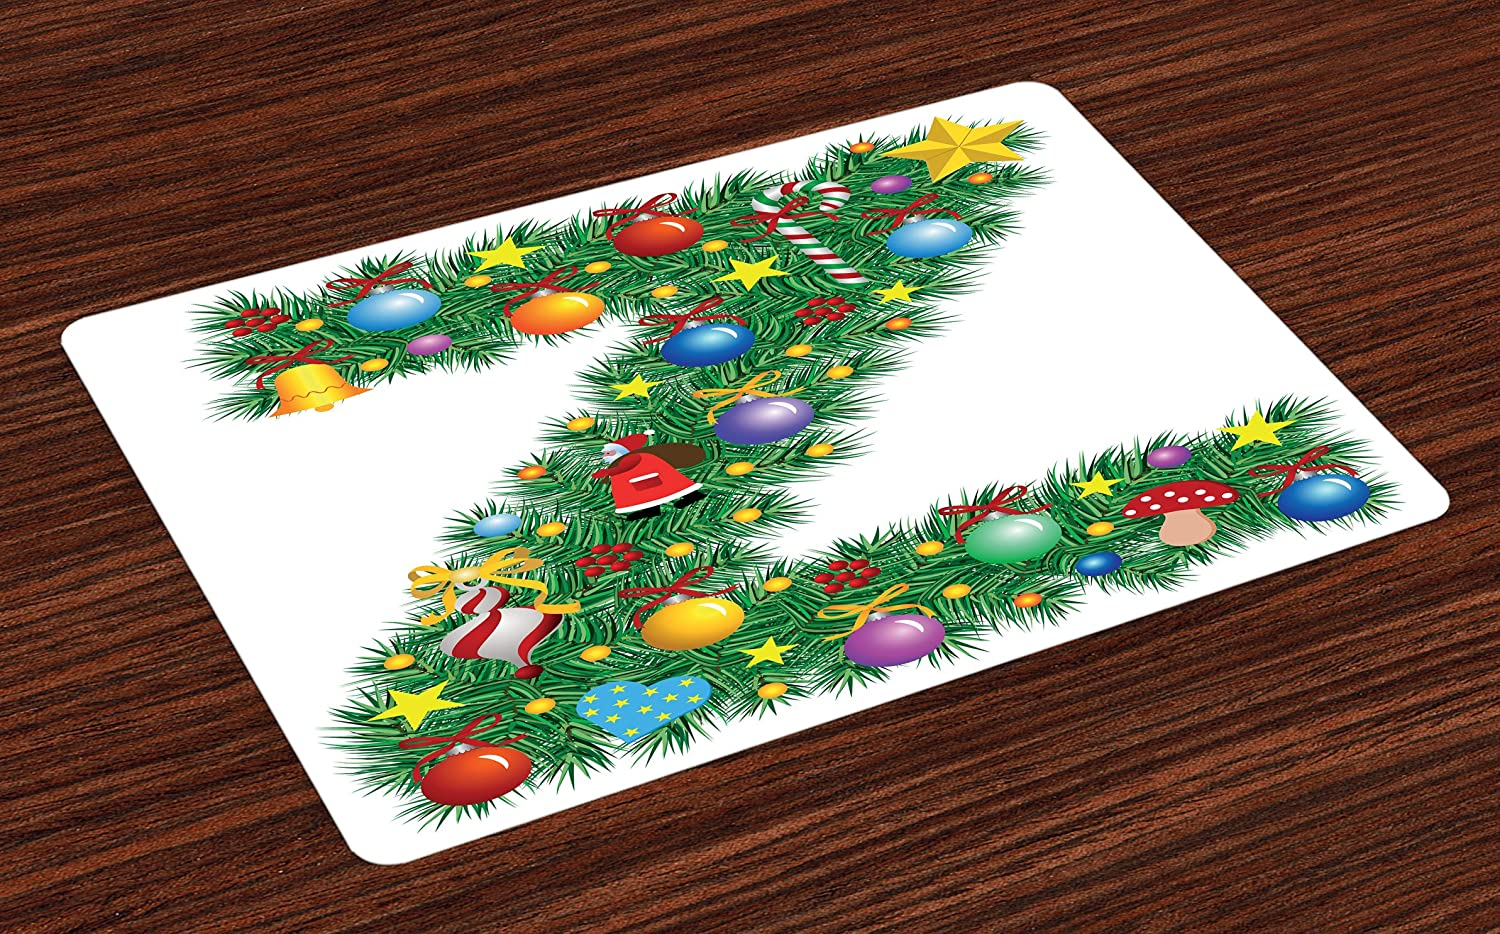 Ambesonne Letter Z Place Mats Set of 4, Traditional Themed Font Design Z with Colorful Ornaments Christmas Santa Claus, Washable Fabric Placemats for Dining Room Kitchen Table Decor, Multicolor